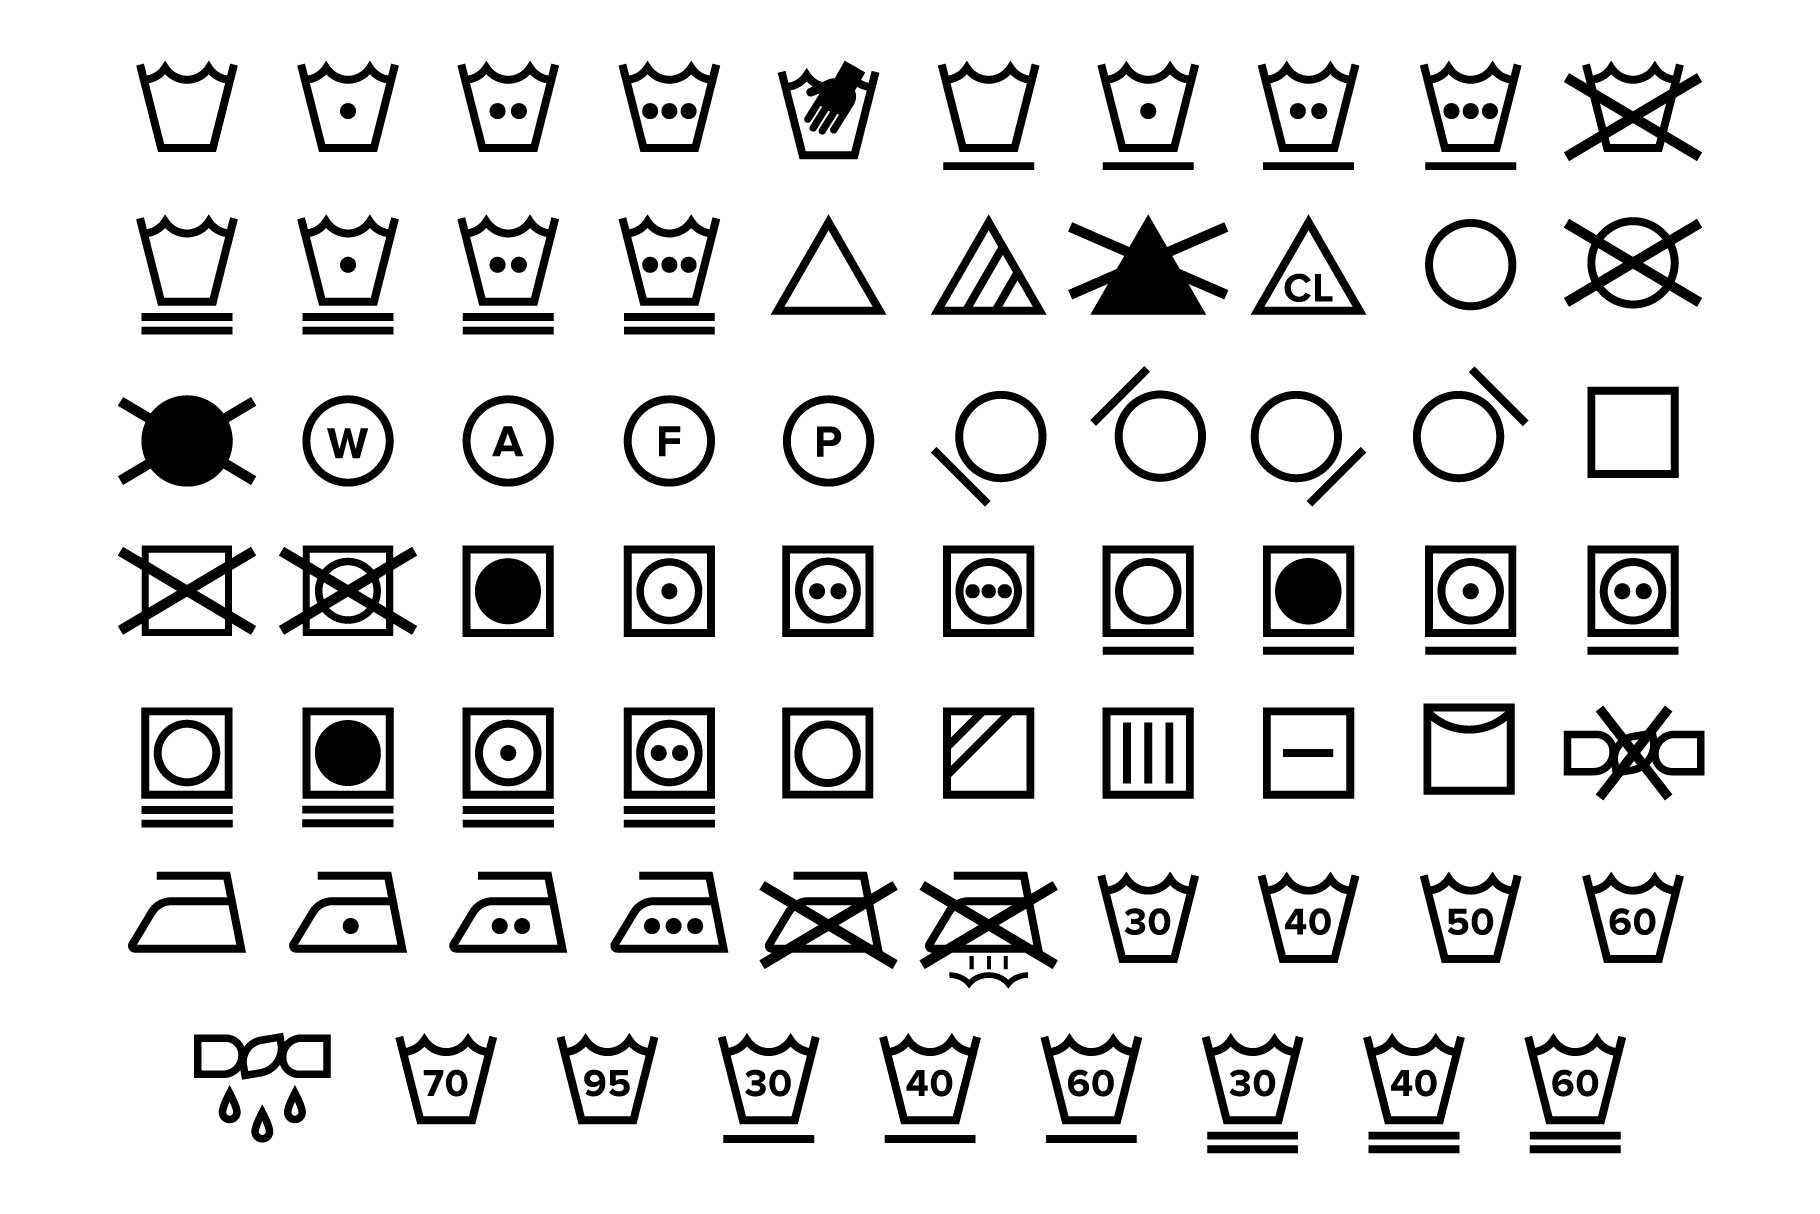 Laundry Care Symbol Icons Set example image 1